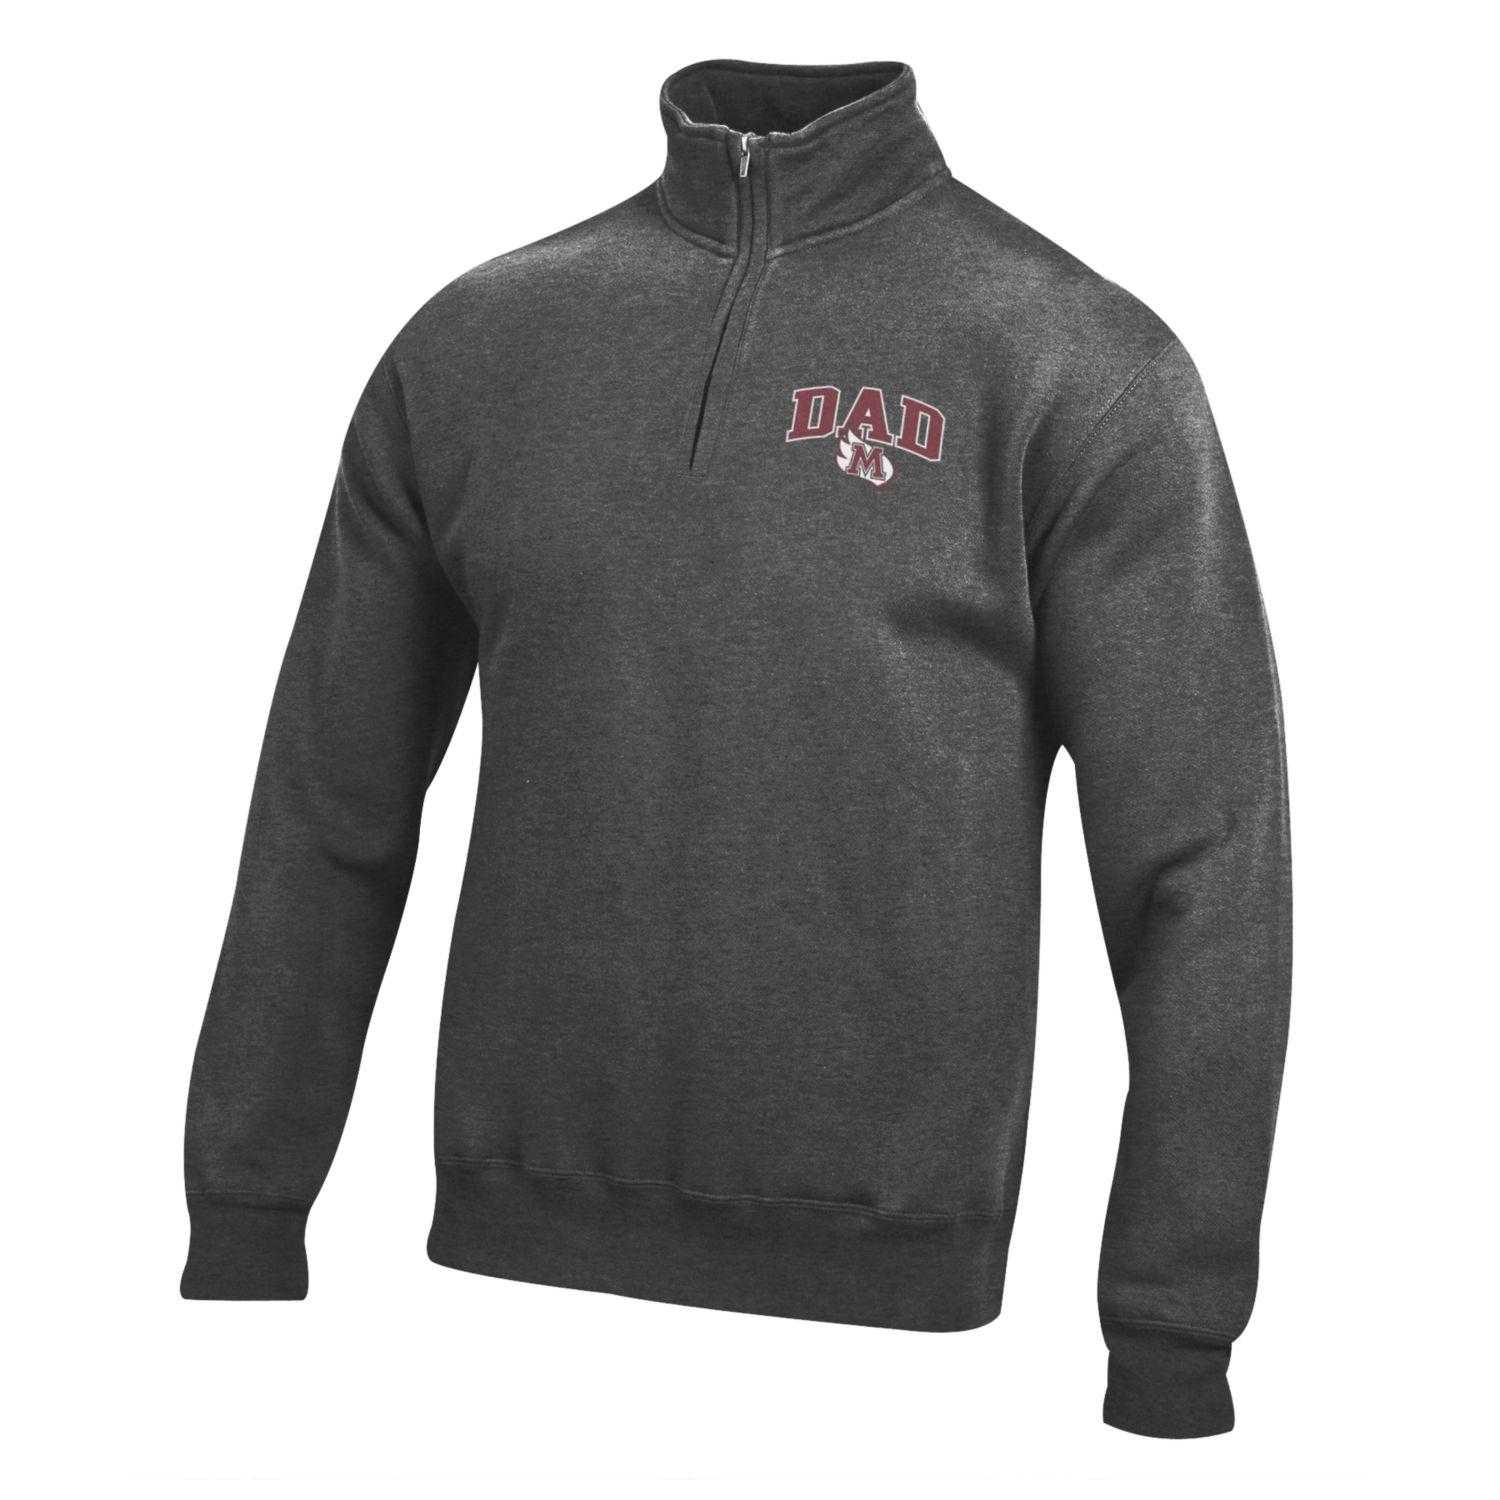 Image for the Dad 1/4 Zip, Charcoal Heather product